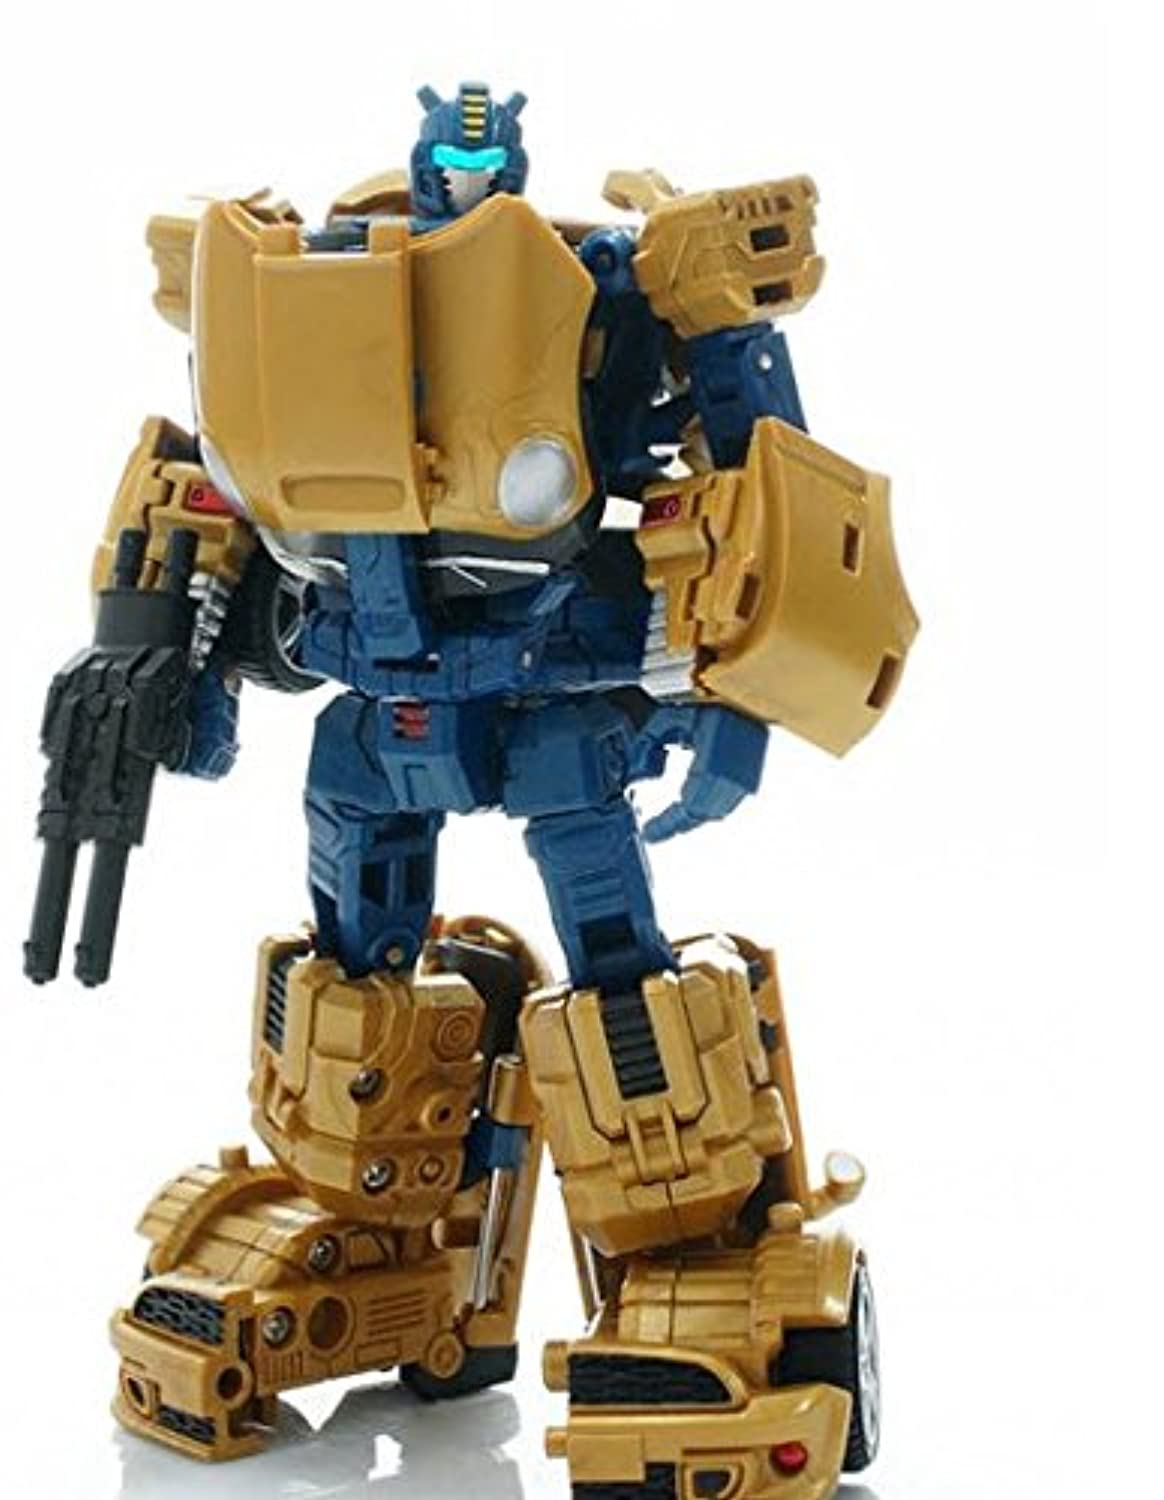 Toyworld Gestalt - Shinebug TW-T05「並行輸入品